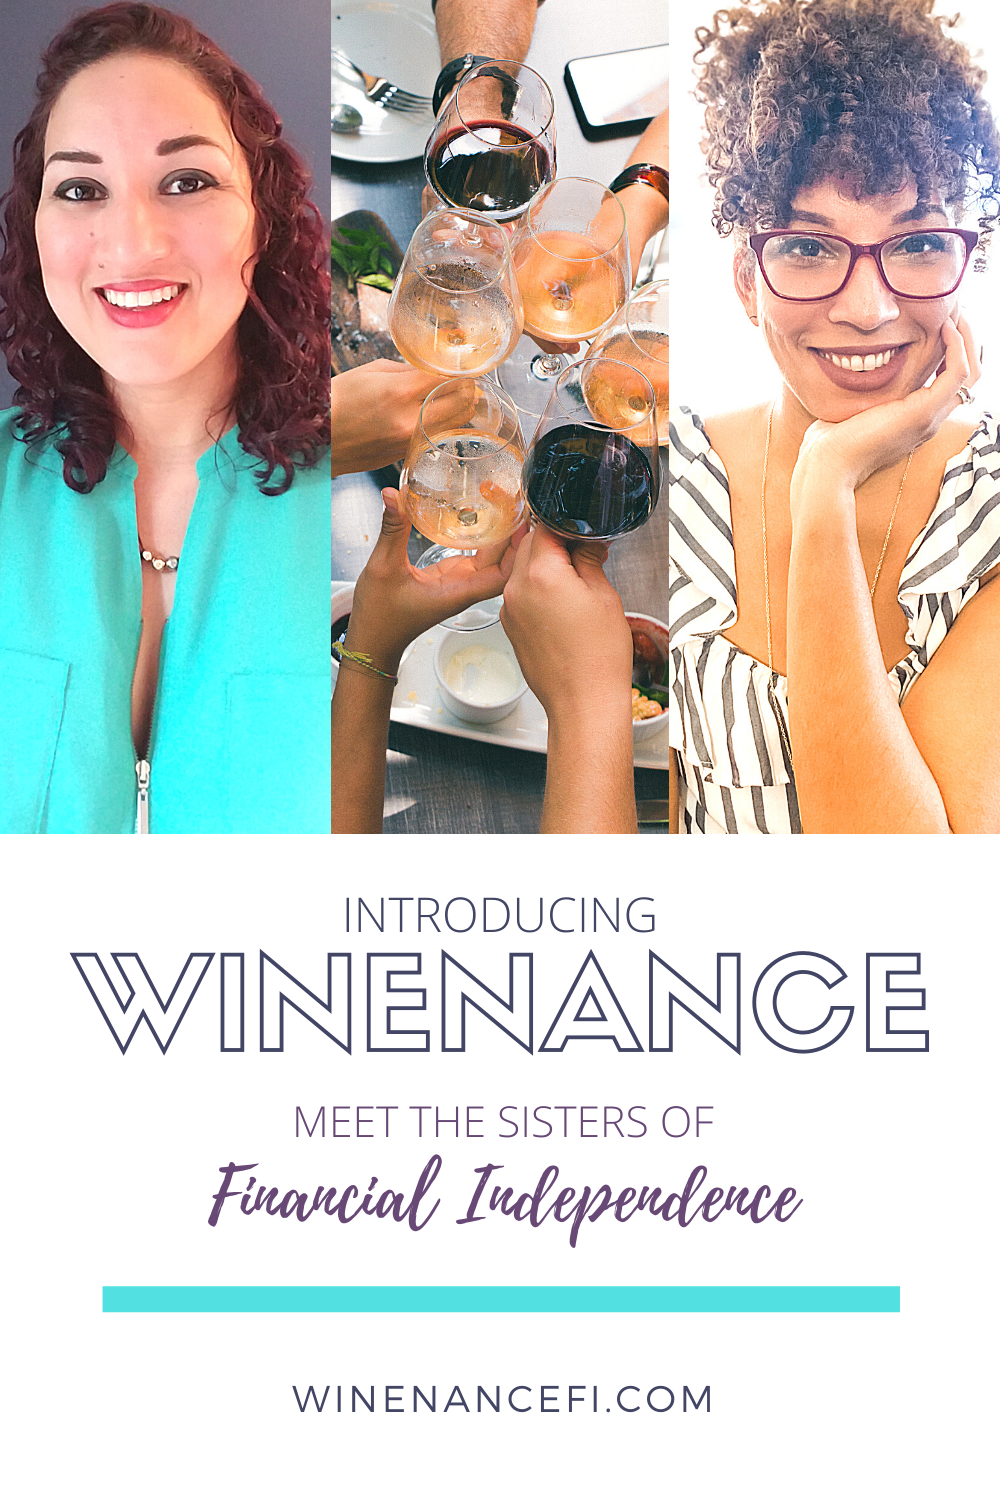 Financial Independence Money Coaches and Sisters Stephanie Stockwell and Marie Coleman-Johns